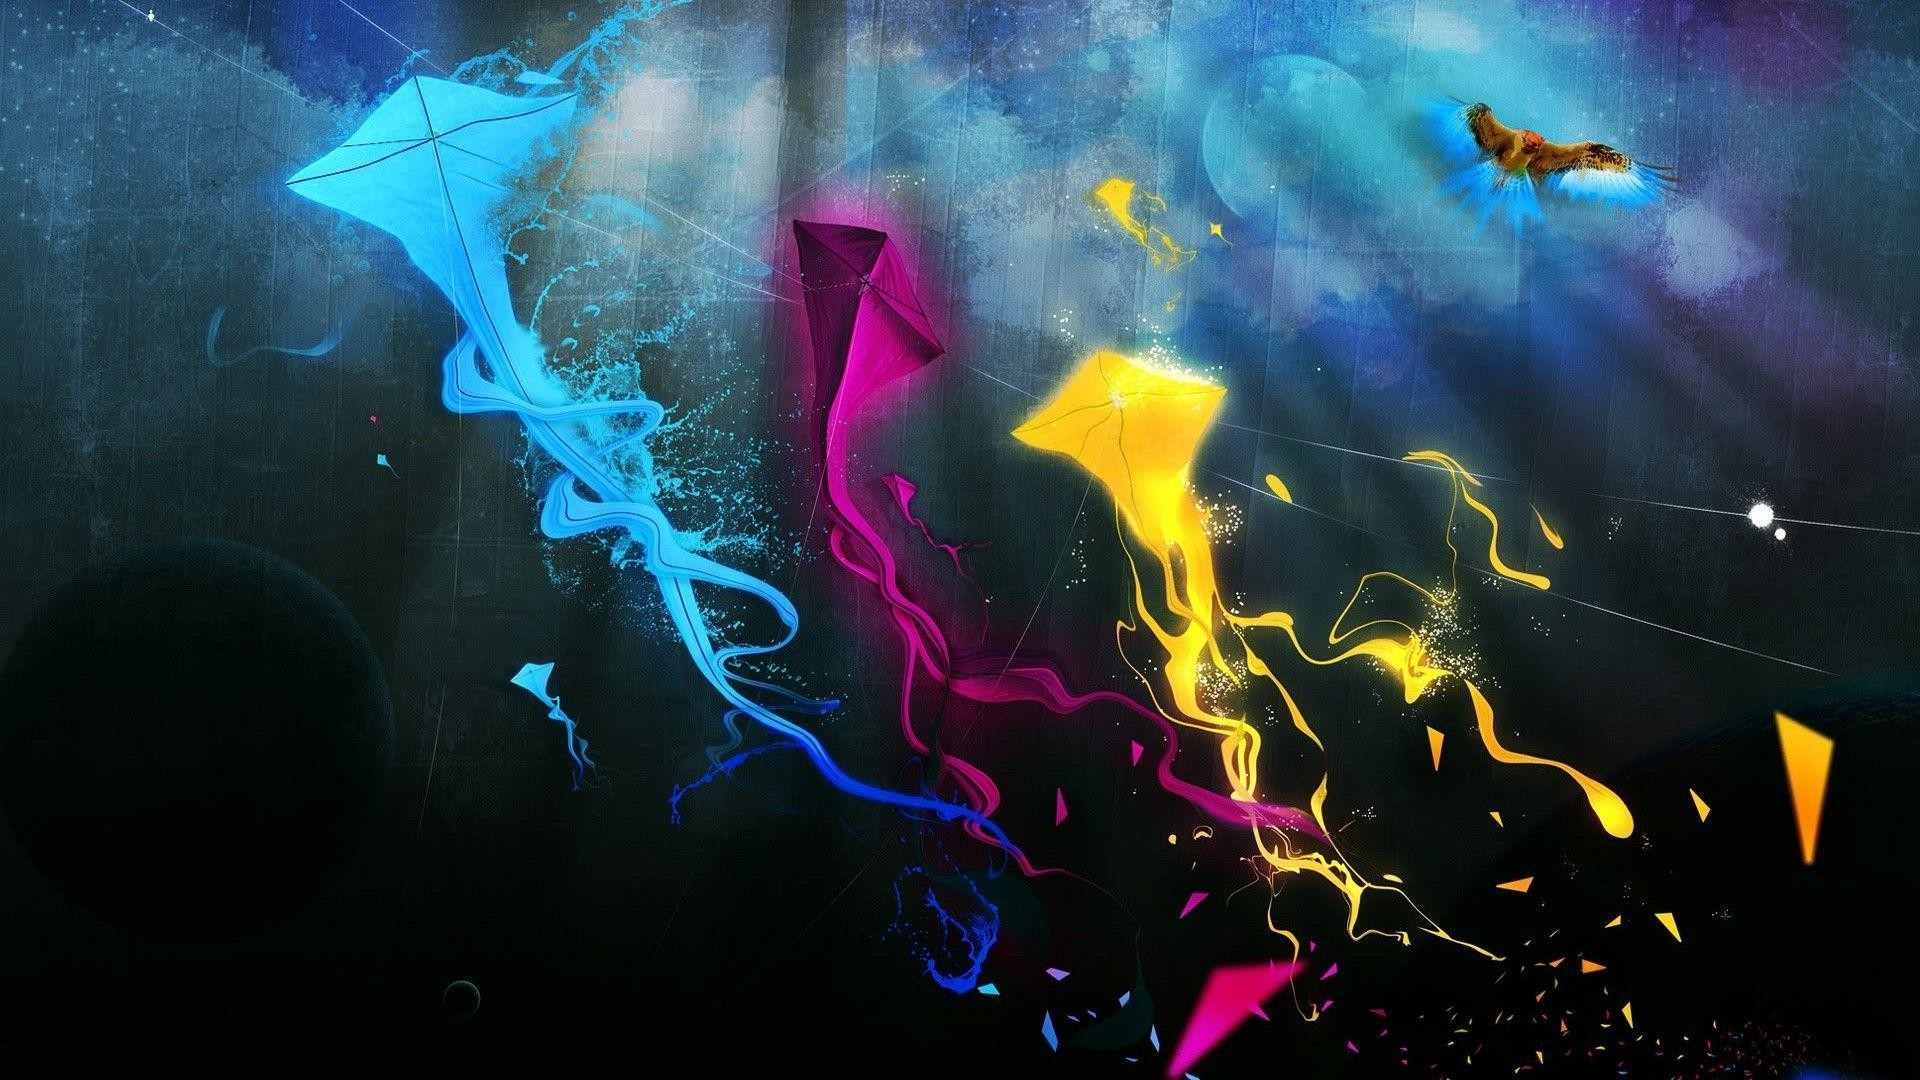 Hd 3D Abstract Wallpapers 1080P Images 6 HD Wallpapers   lzamgs.